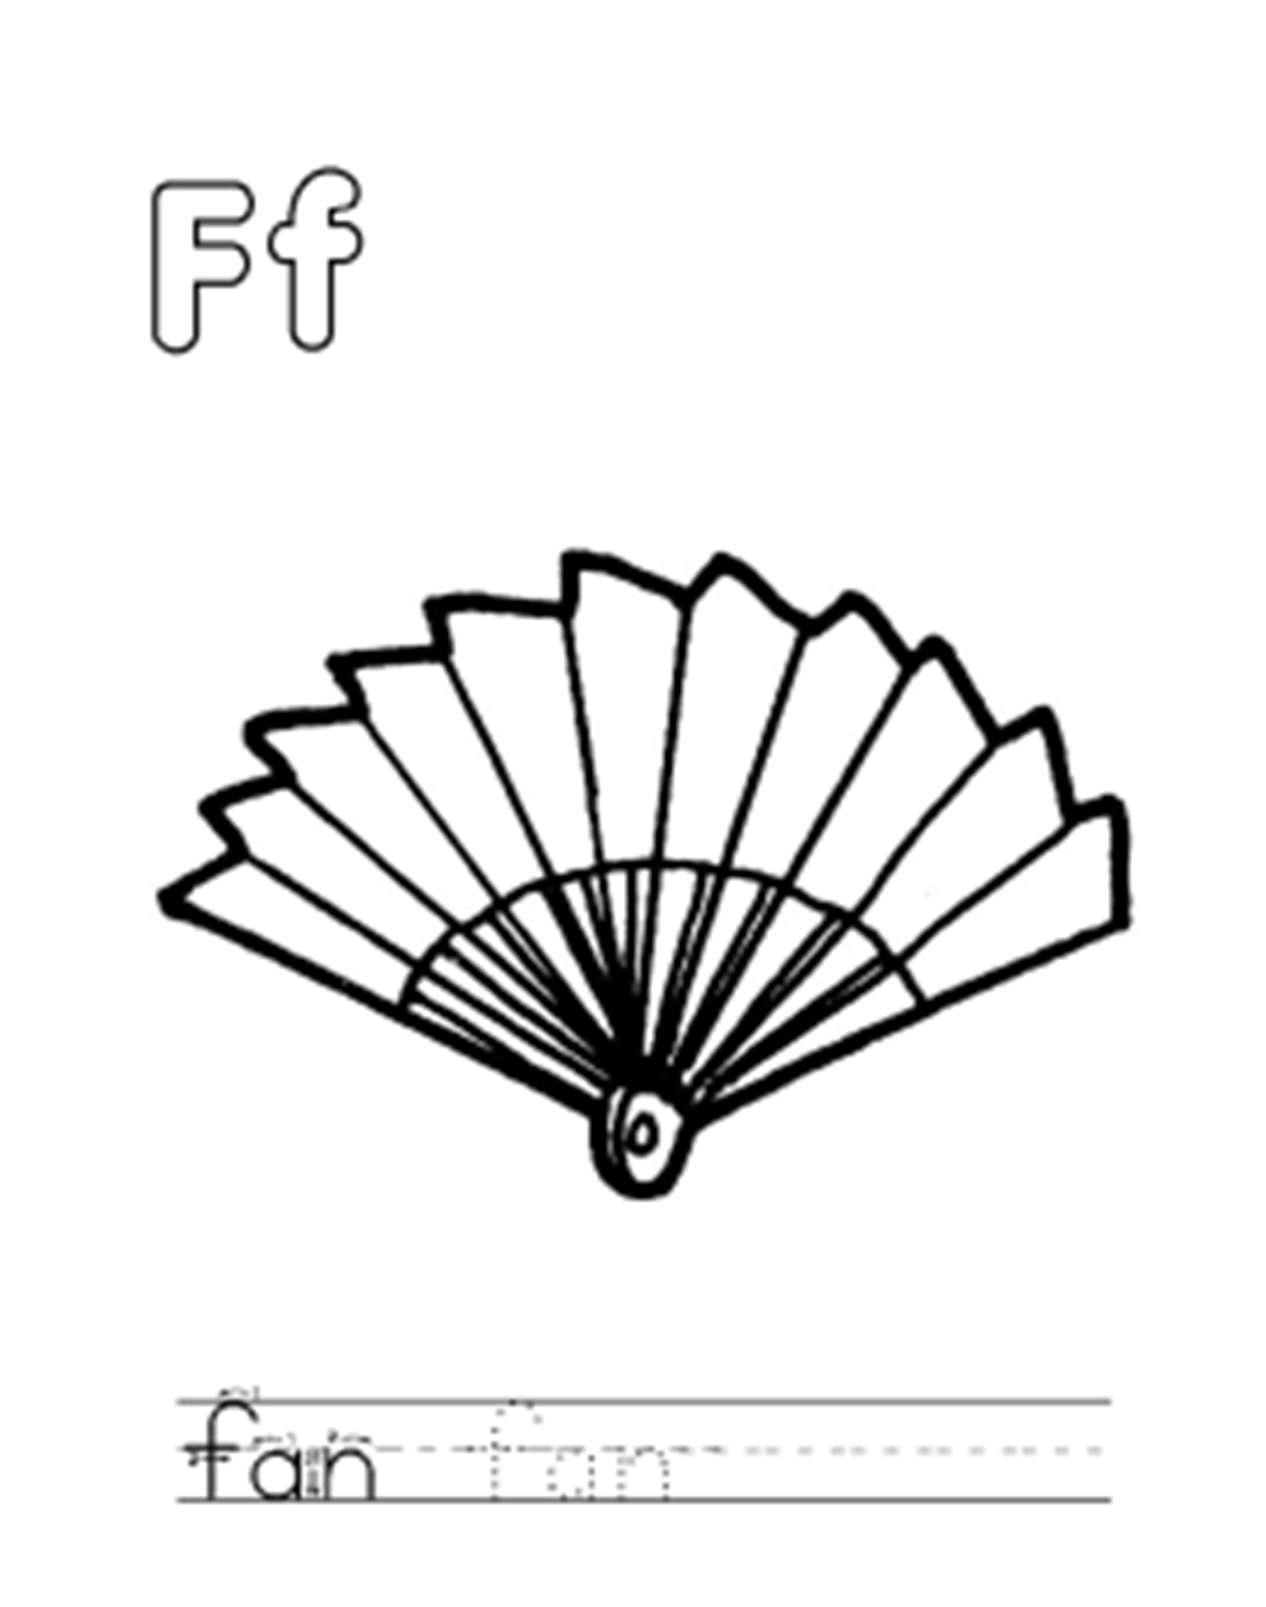 fan coloring page electric fan coloring page sketch coloring page fan page coloring